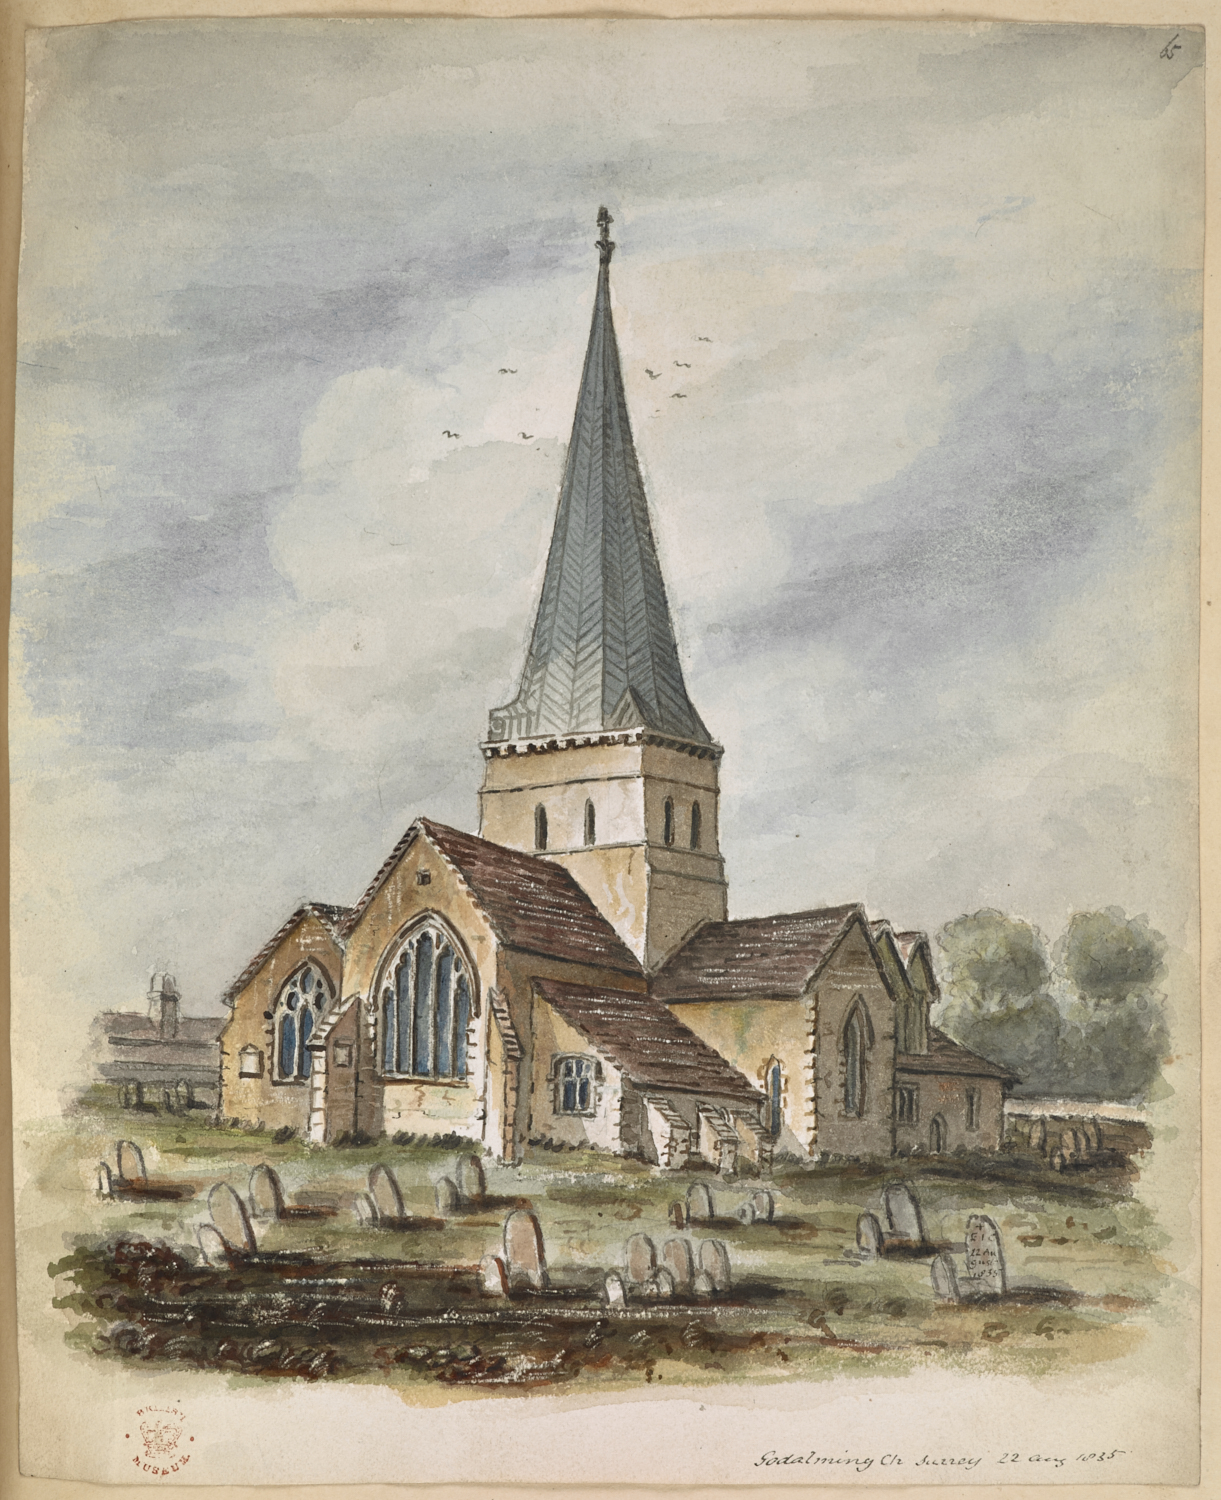 A View of Godalming Church, Surrey